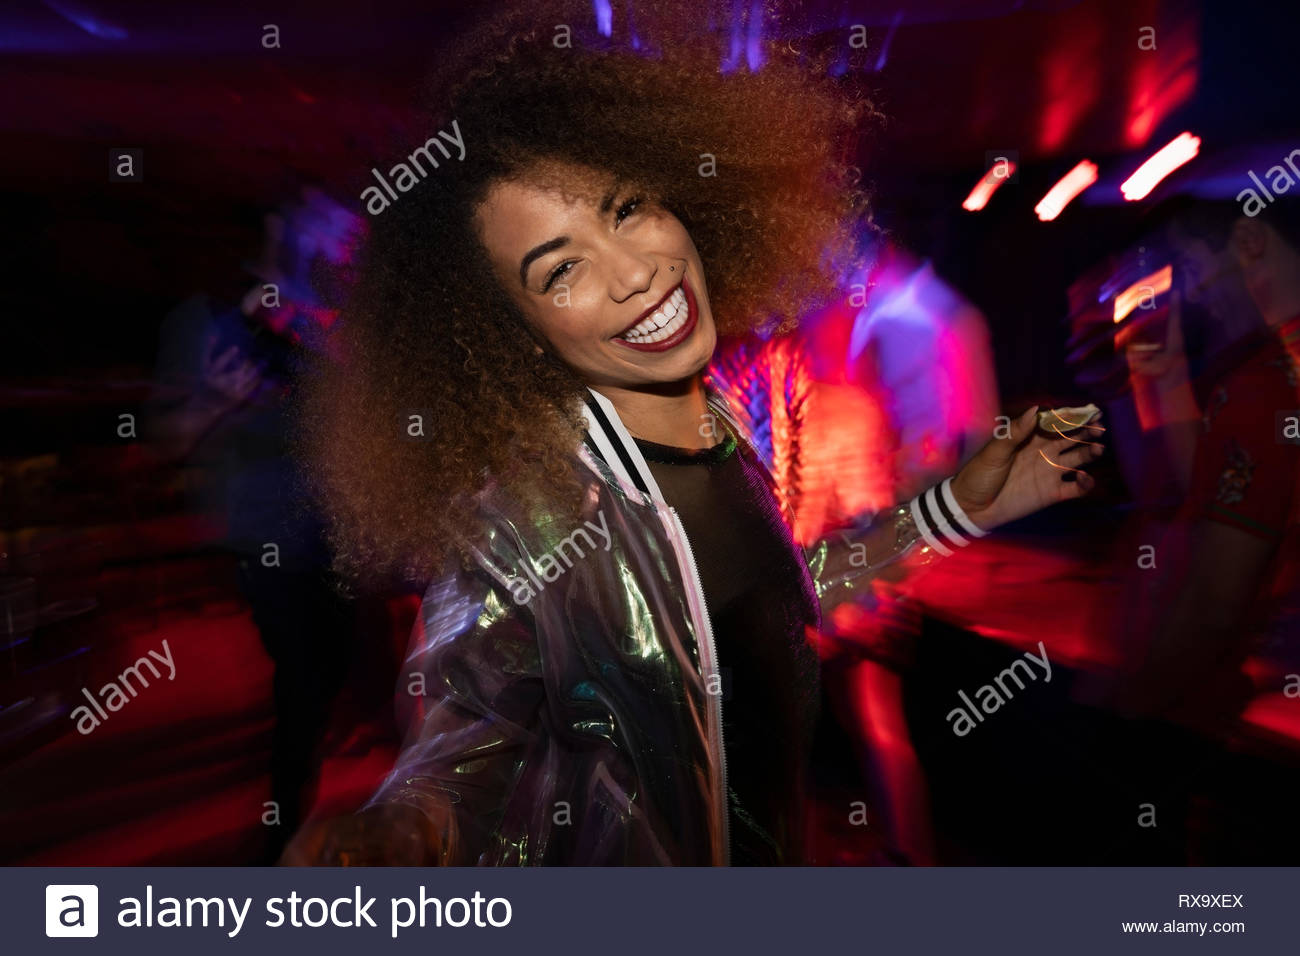 Carefree Portrait young woman dancing in nightclub Photo Stock